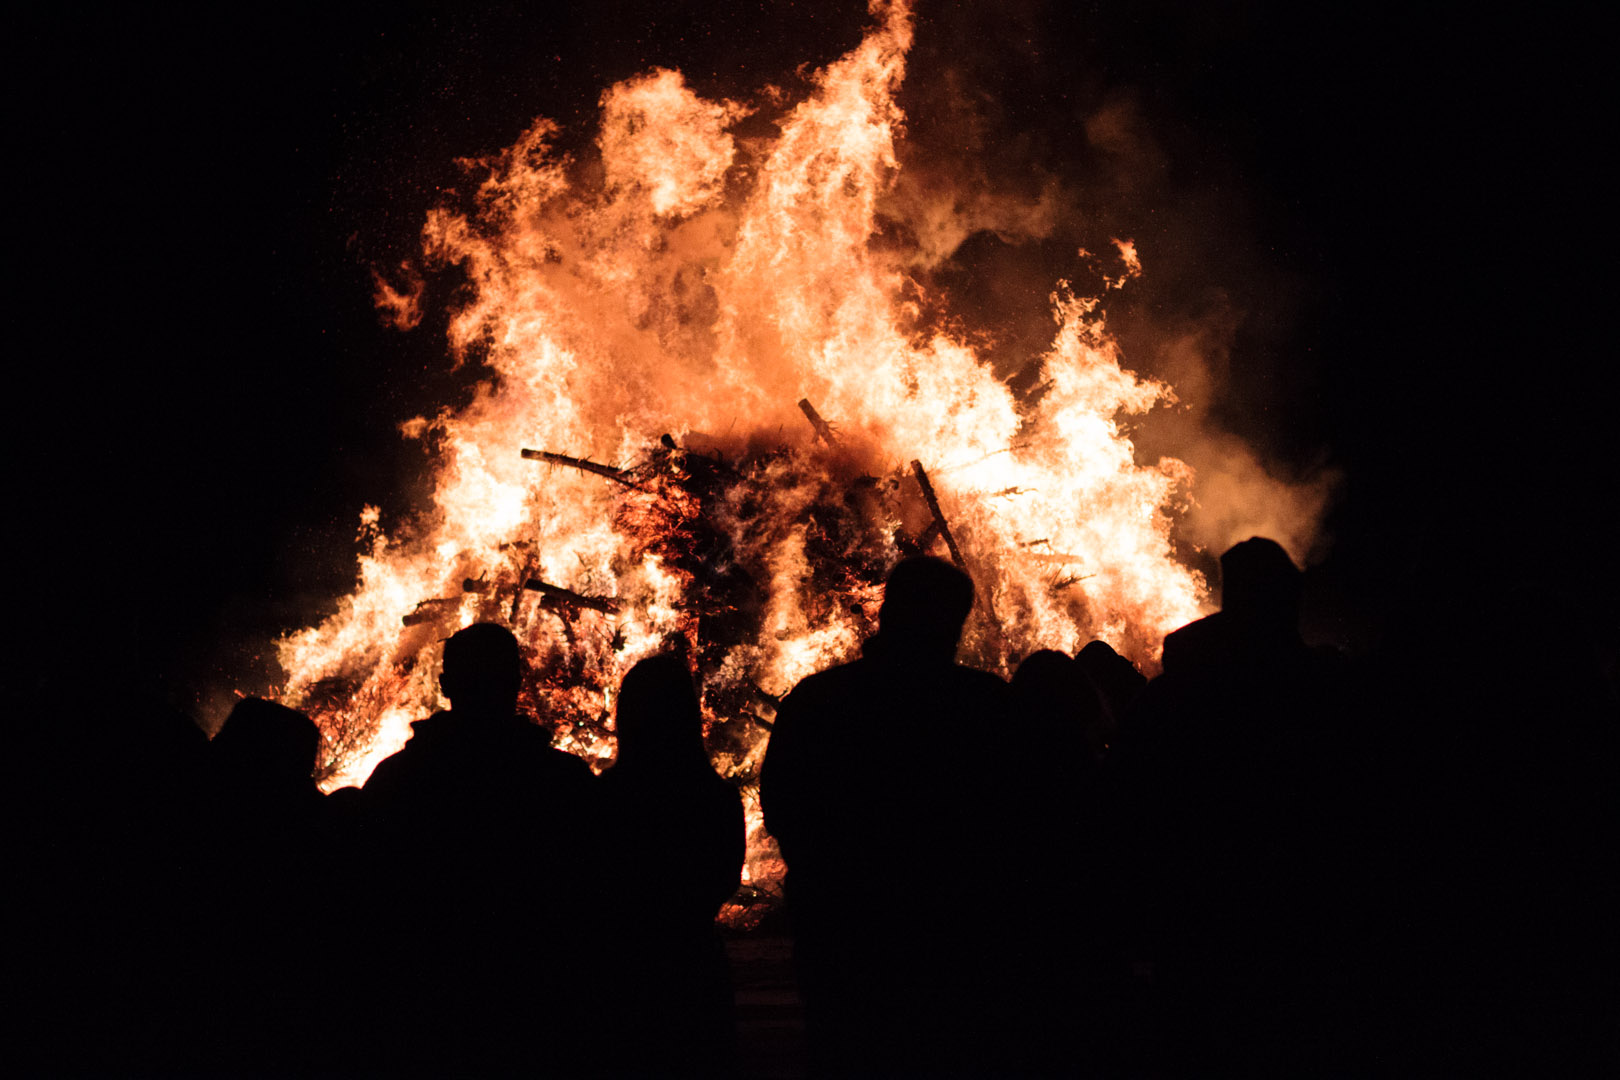 10th Annual Christmas Tree Bonfire, Salem MA | Christina Minniti Photography